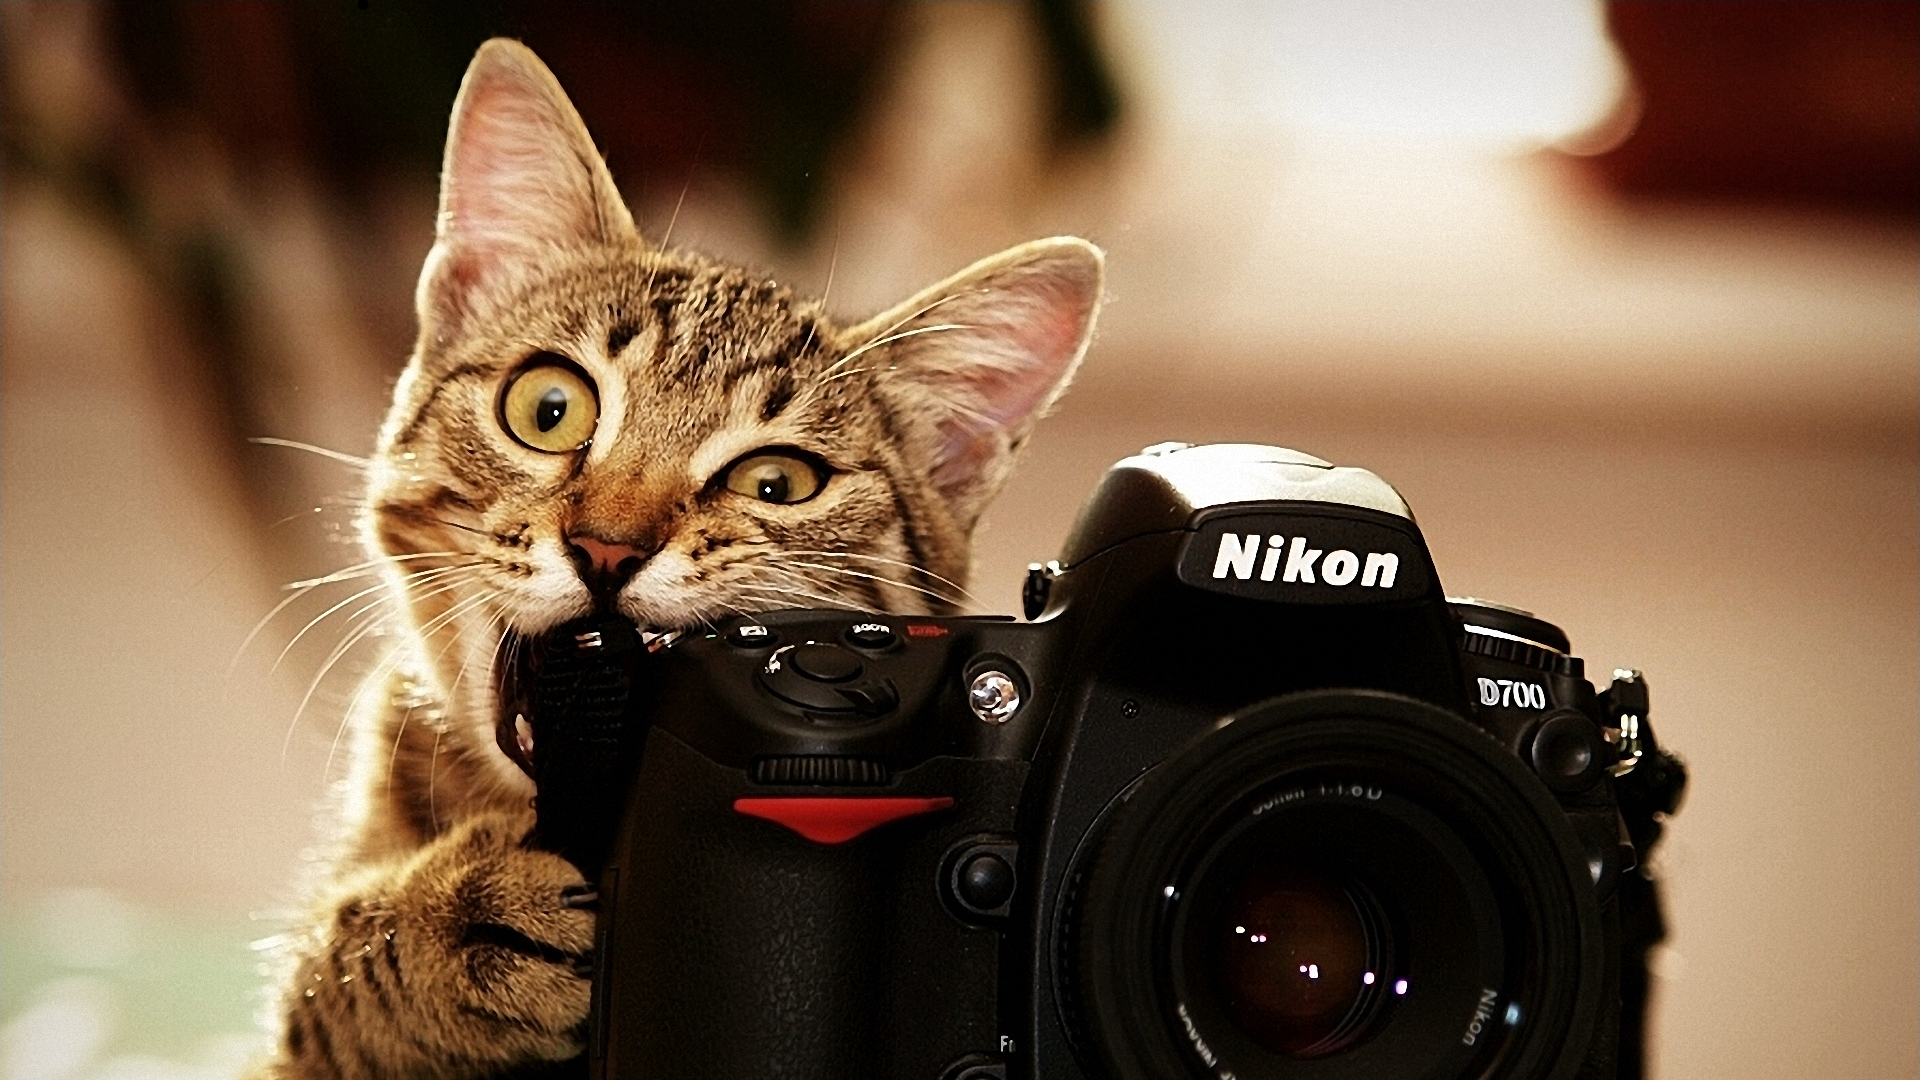 cats cameras Nikon kittens biting d700 Life